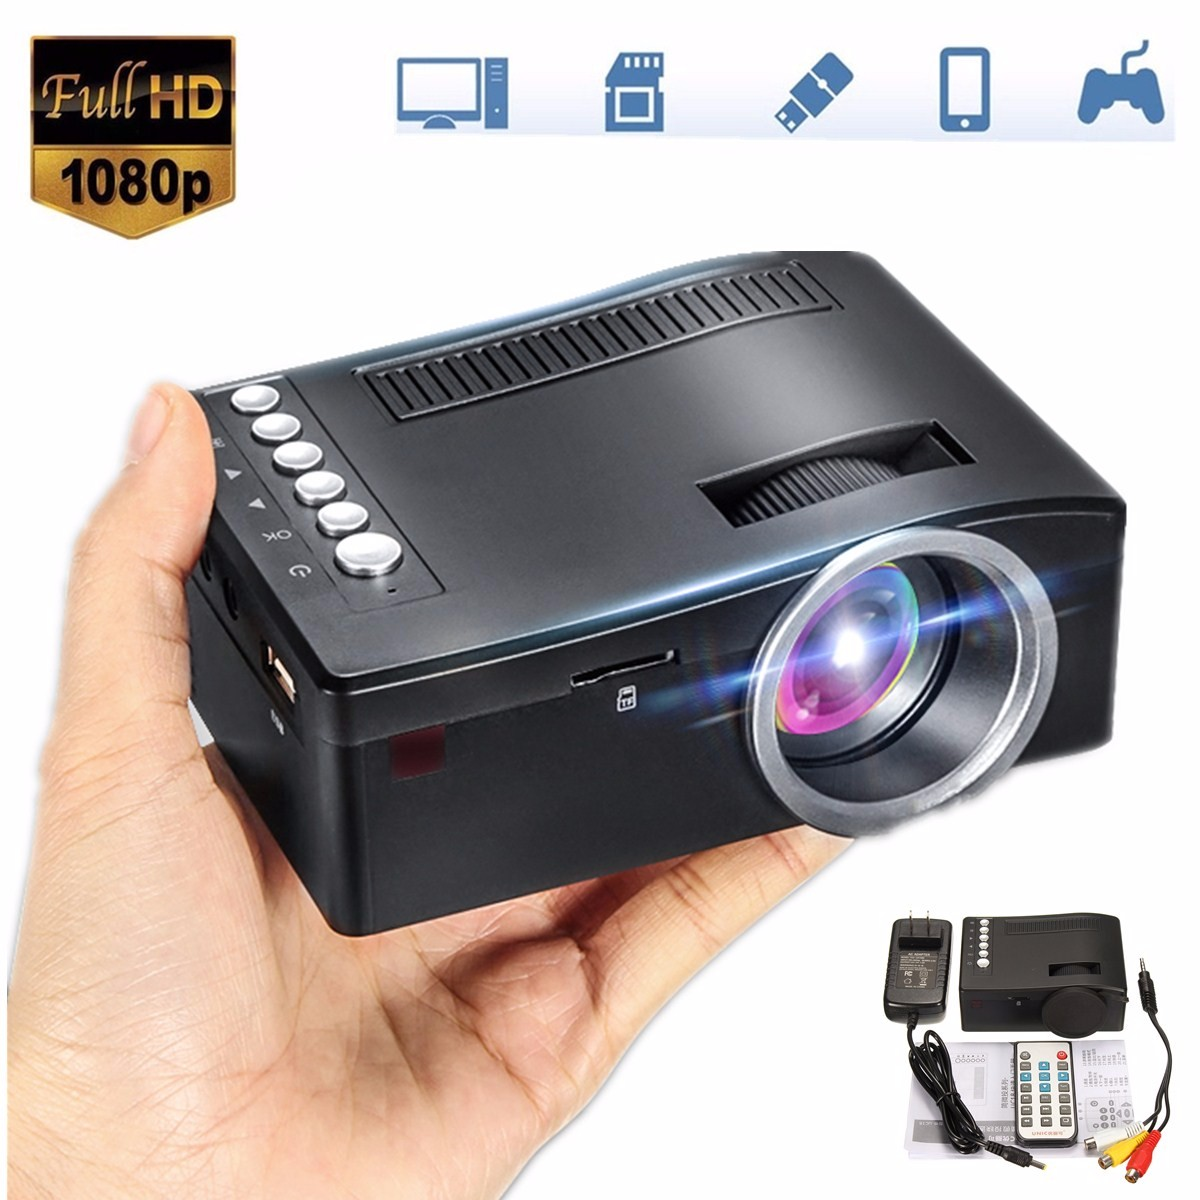 Mini Cinema Home Theater System 1080P HD Multimedia Projector TV AV USB TF HDMI PC LED Digital Pocket Home Projector Home пылесос bosch pas 18 li set 0 603 3b9 002